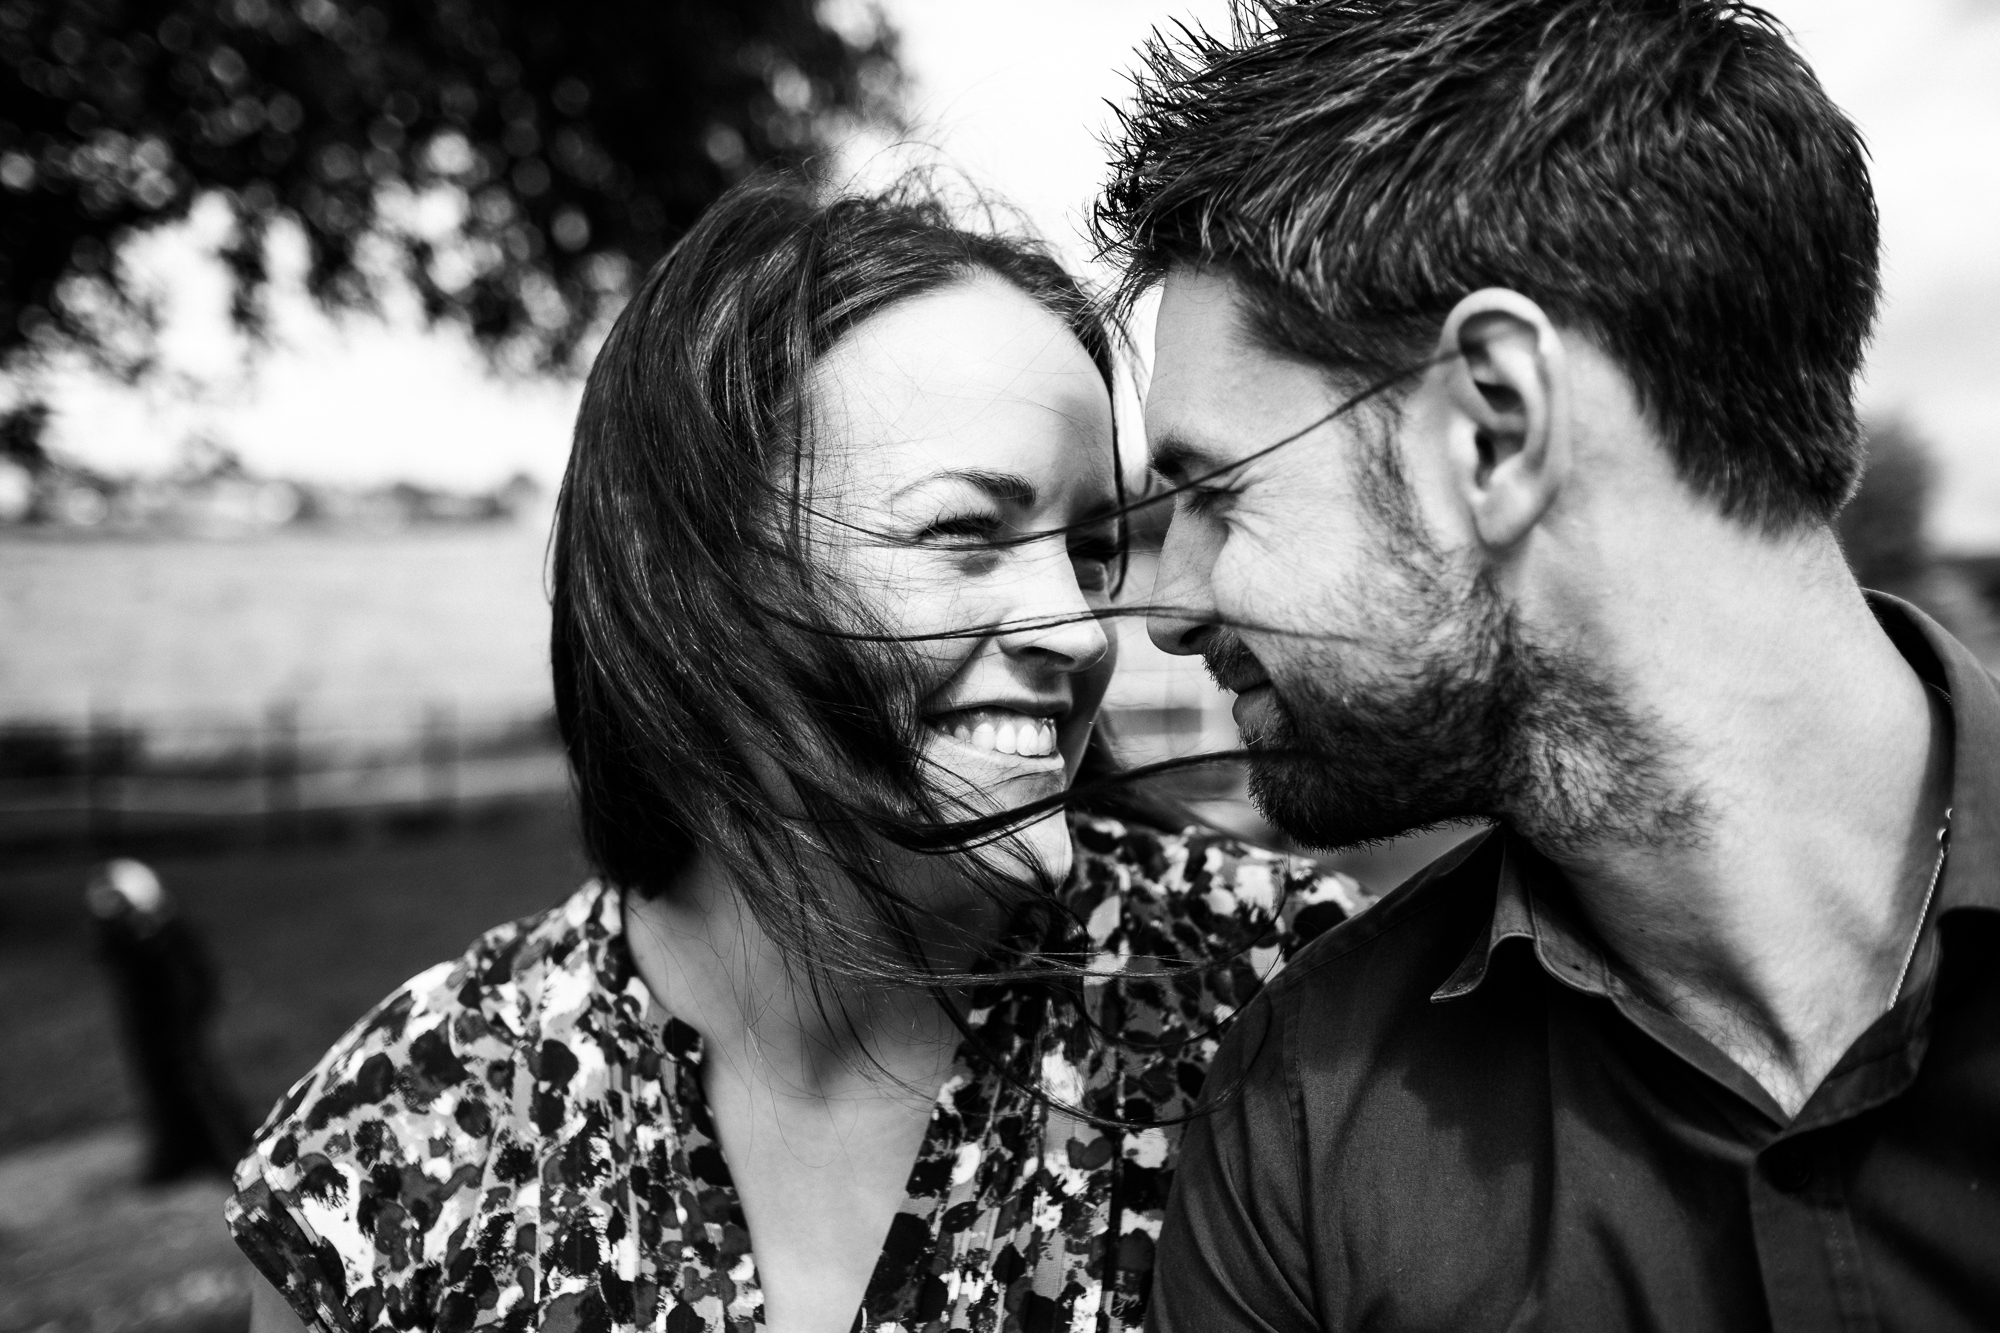 Pre-Wedding Session Engagement Photos Couple Shoot English countryside Canal - Jenny Harper Photography-10.jpg